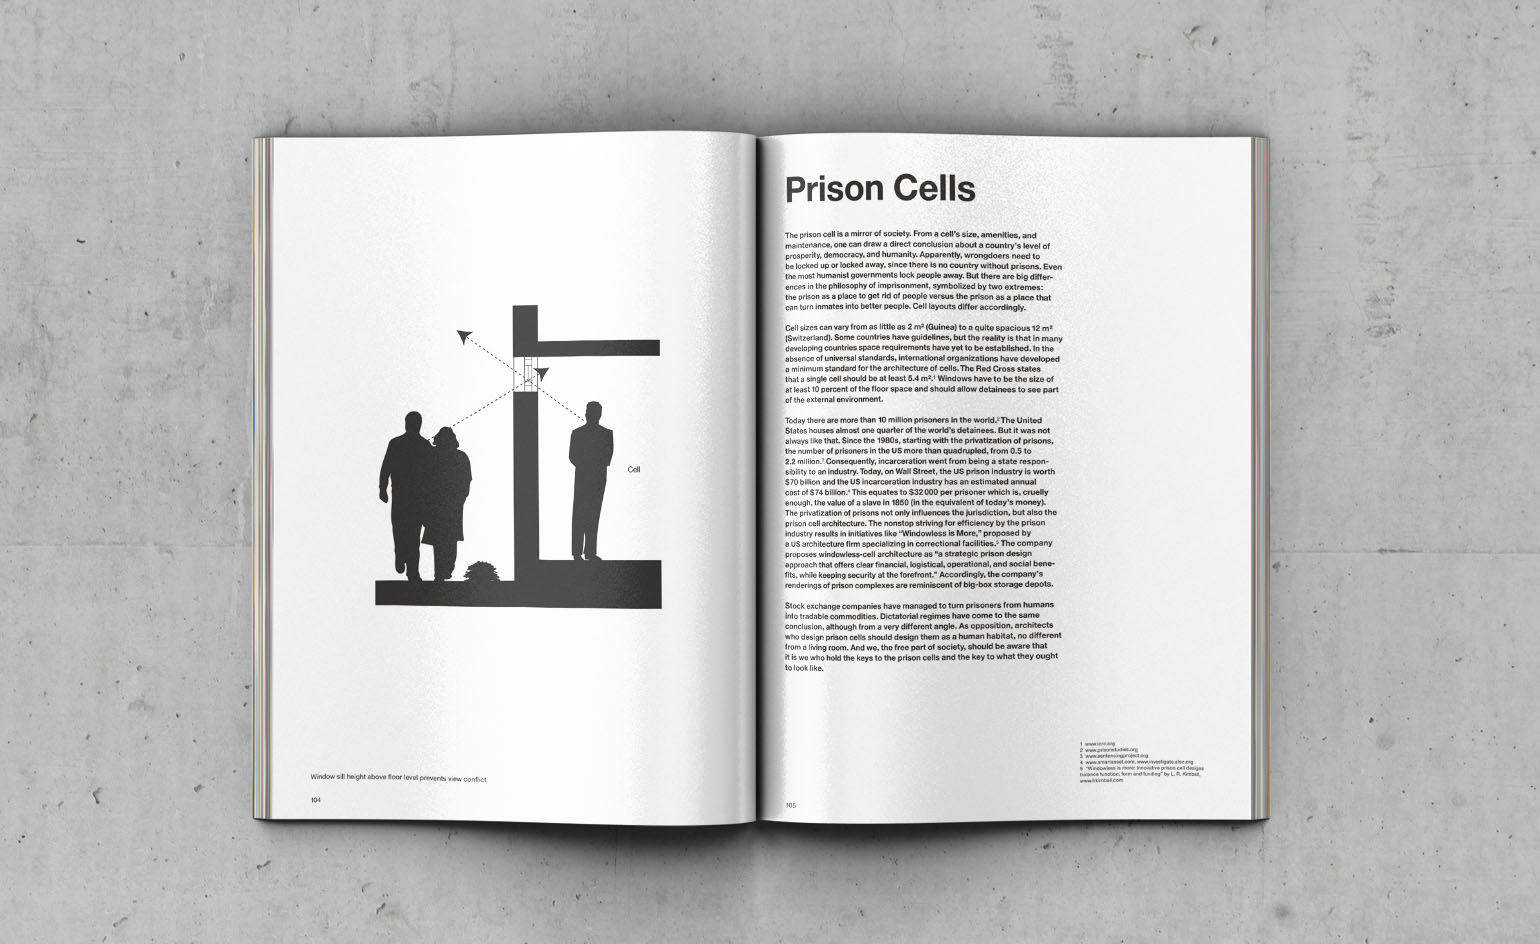 Handbook of Tyranny prison cells